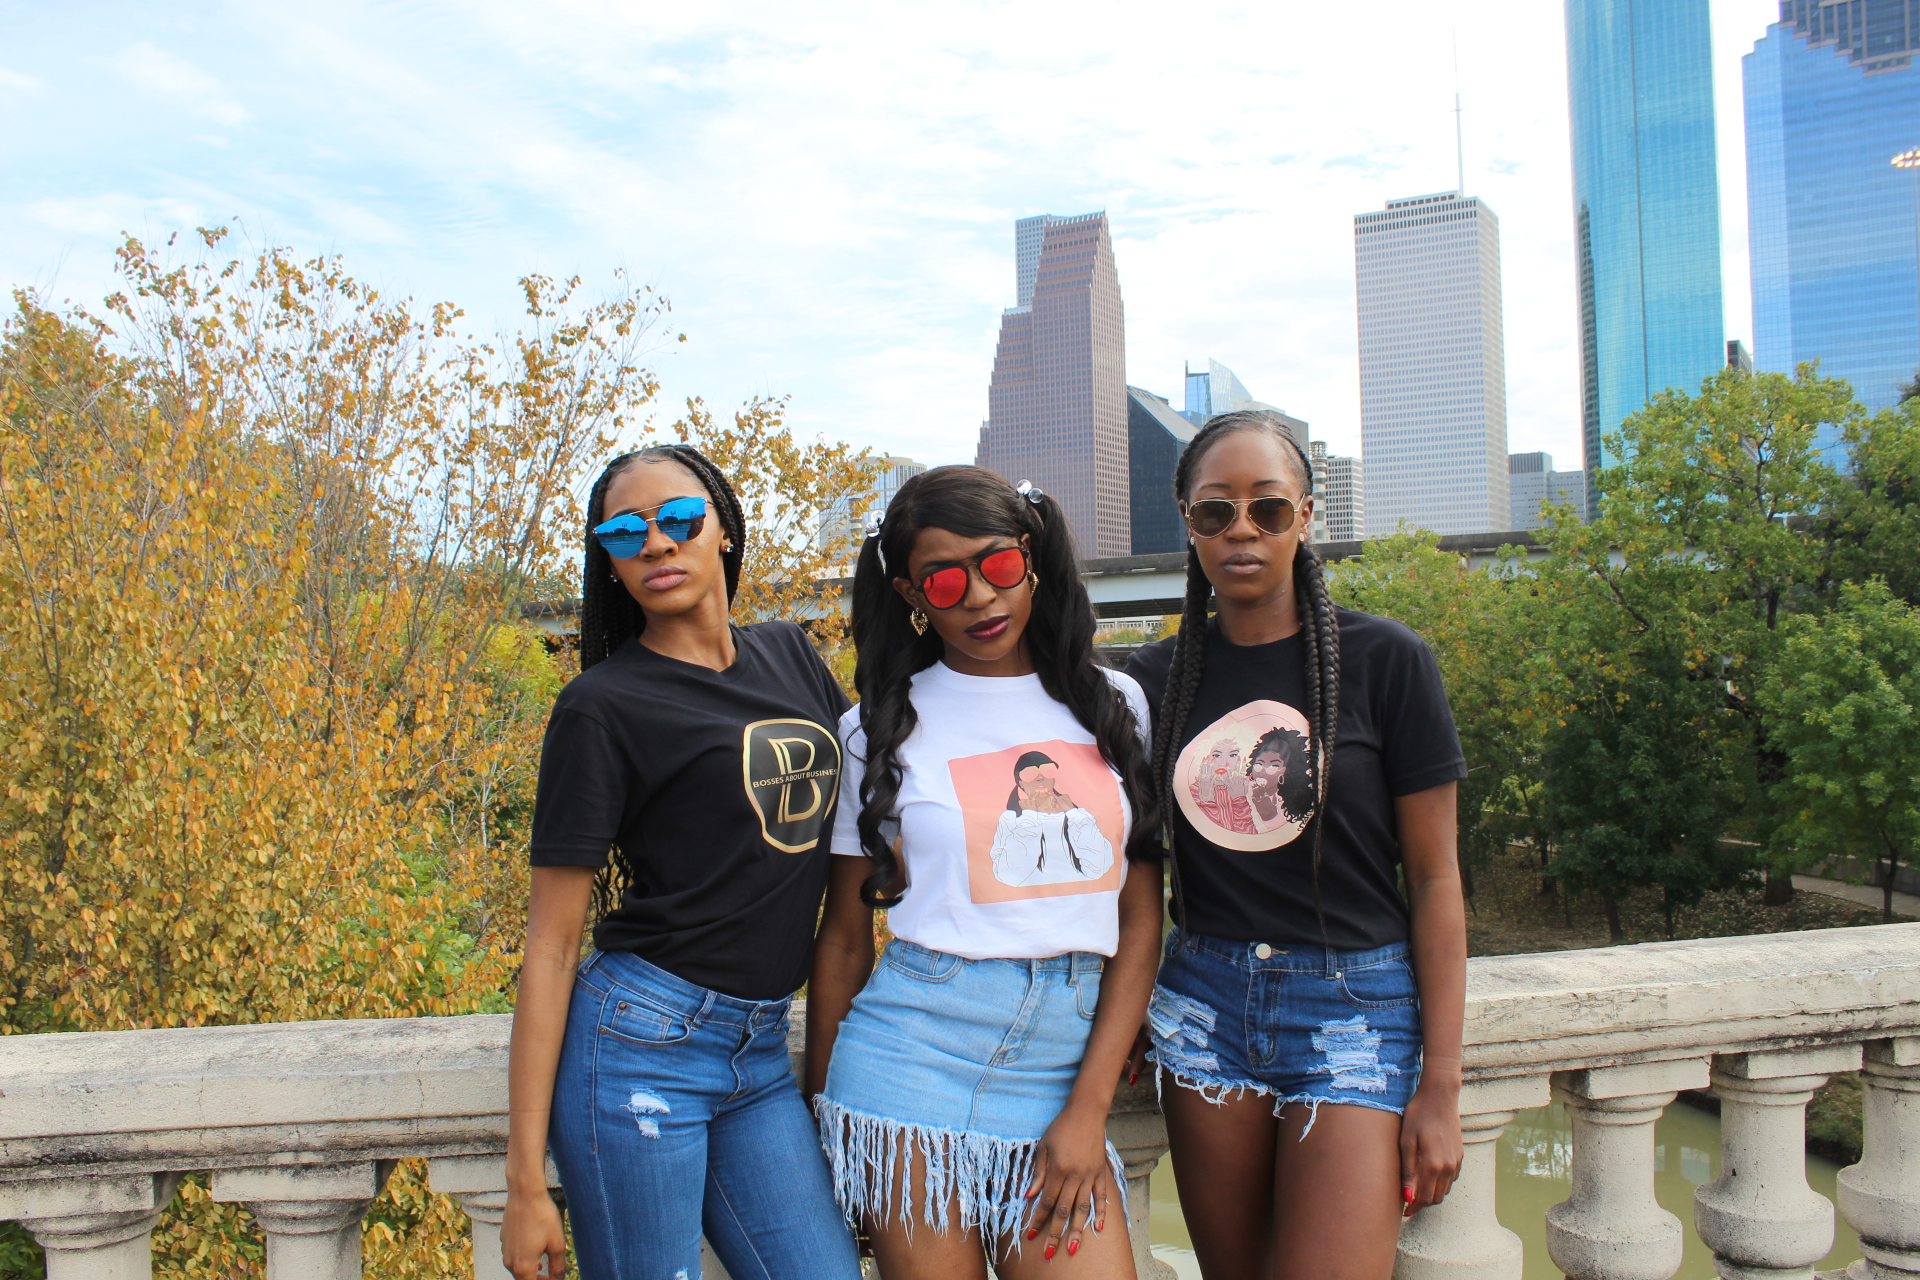 Bosses Signature Logo, Bossed Up, & Duo Drip Graphic Tees